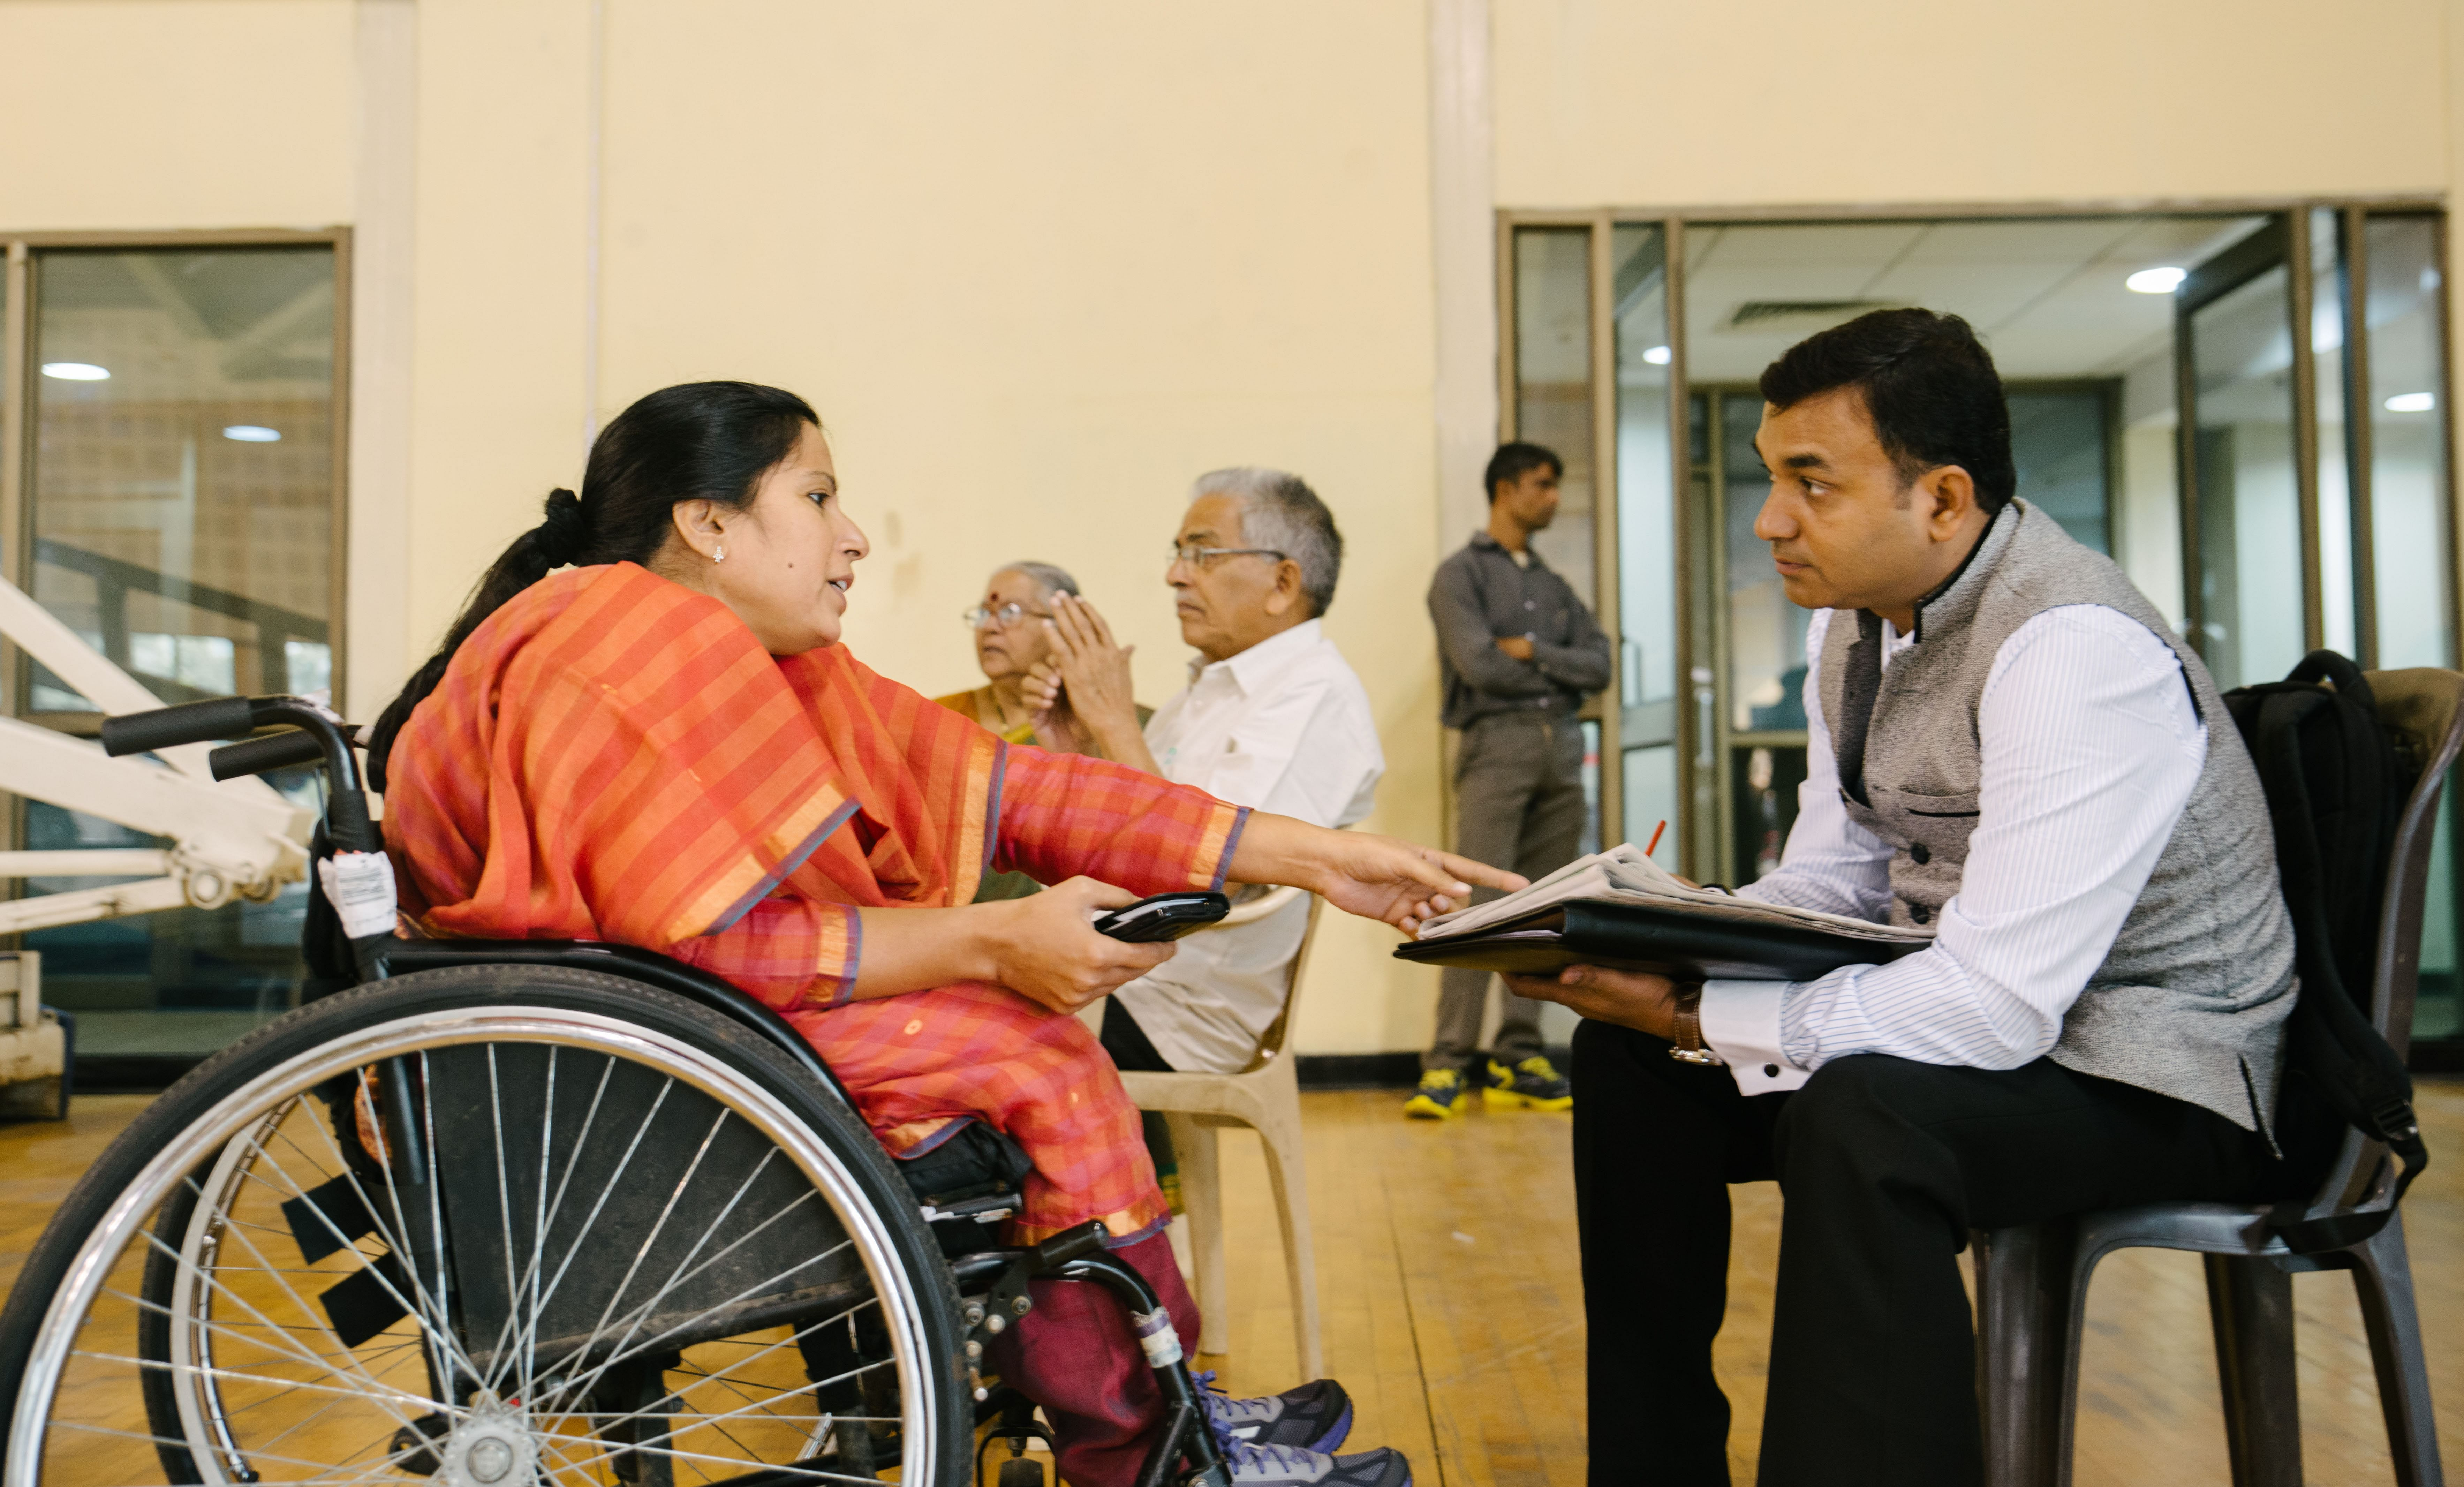 Madhavi Latha, the president of WBFI, in a discussion with a member from the International Committee of the Red Cross, on the inaugural day of the tournament.